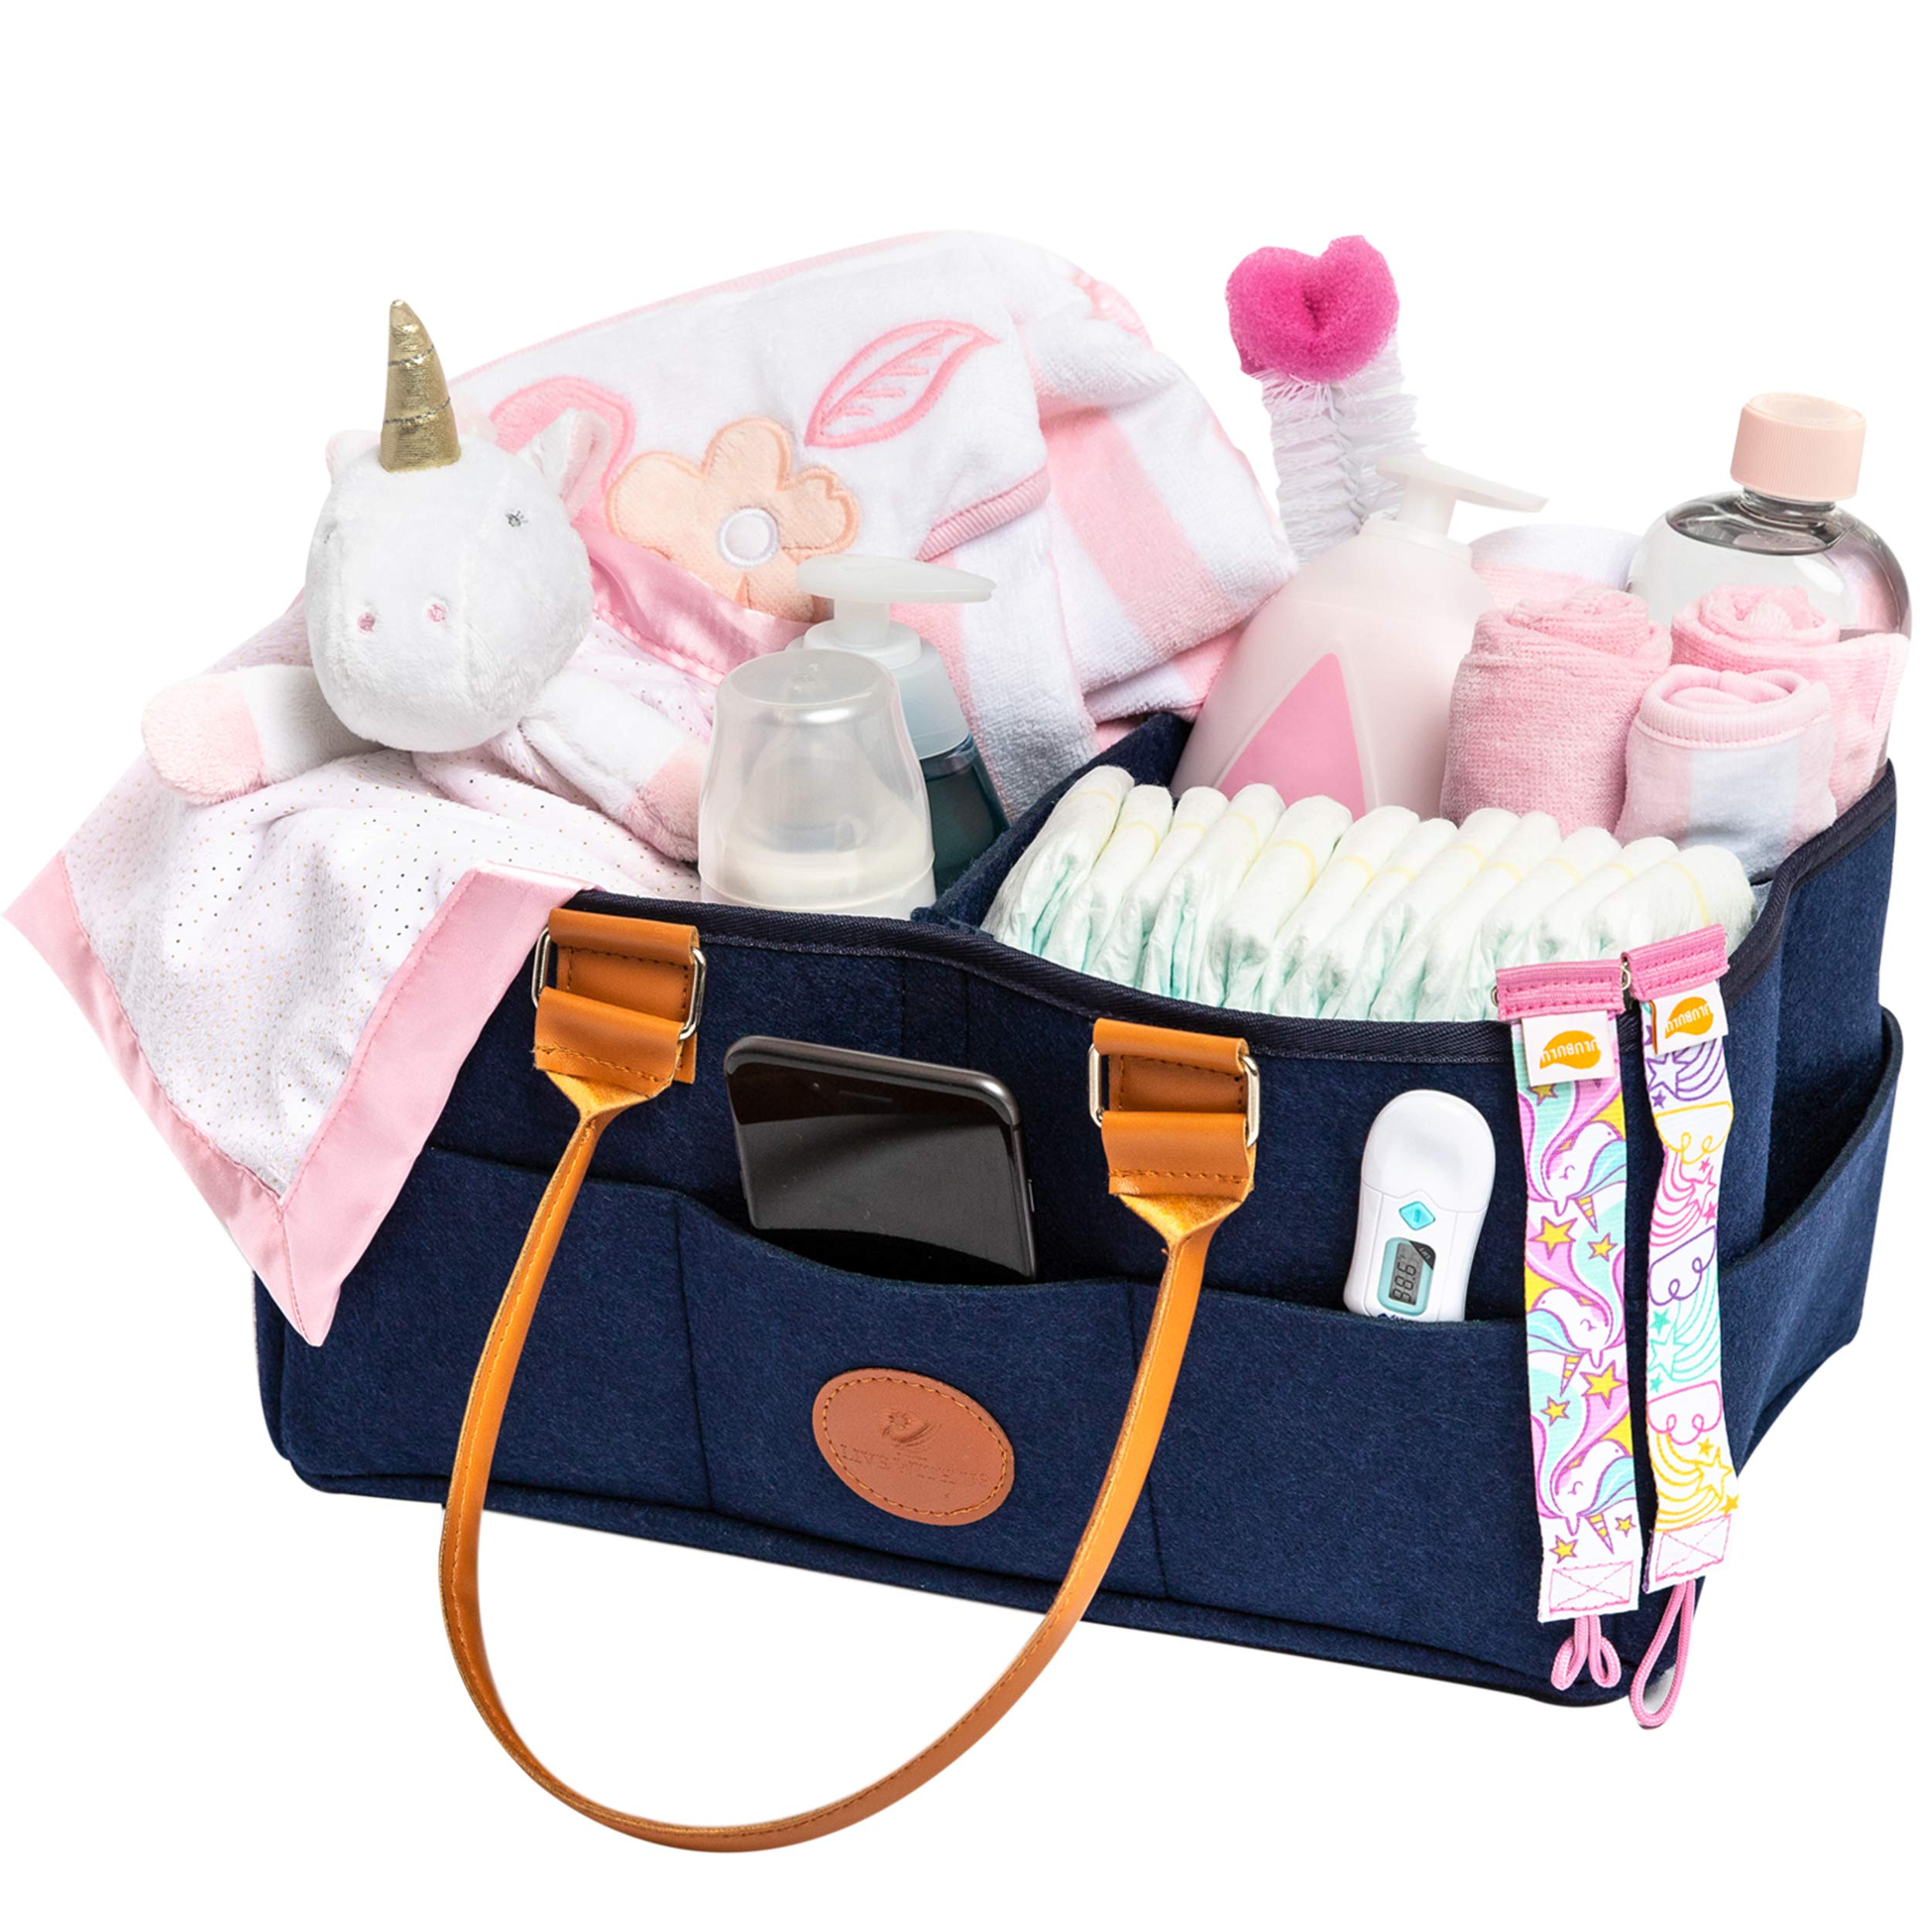 Baby Diaper Caddy and Nursery Organizer Station Compact, Portable Holder Bag for Changing Table and Car |External Pockets |Girl, Boy | Newborn Baby Essentials Basket Organizers Shower Registry